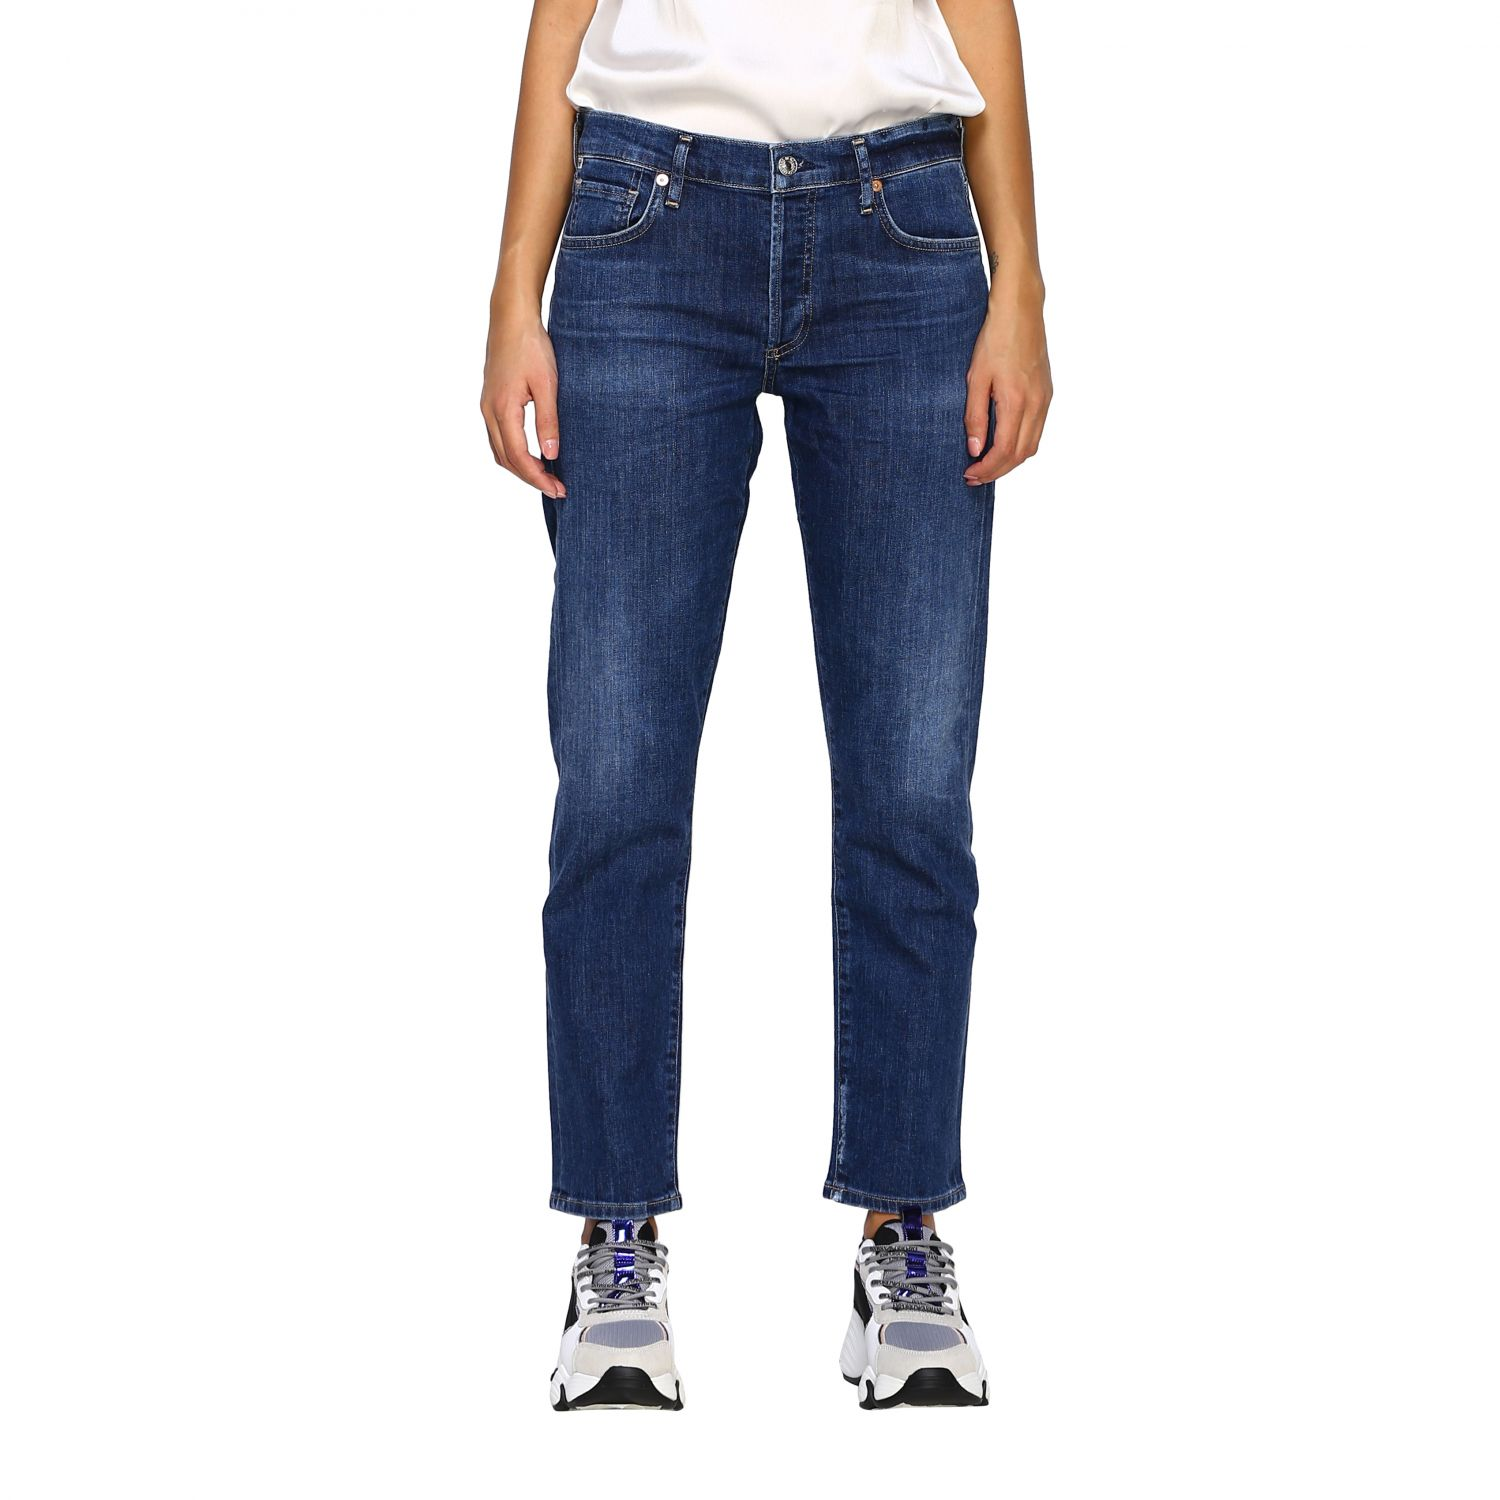 Jeans femme Citizens Of Humanity bleu 1